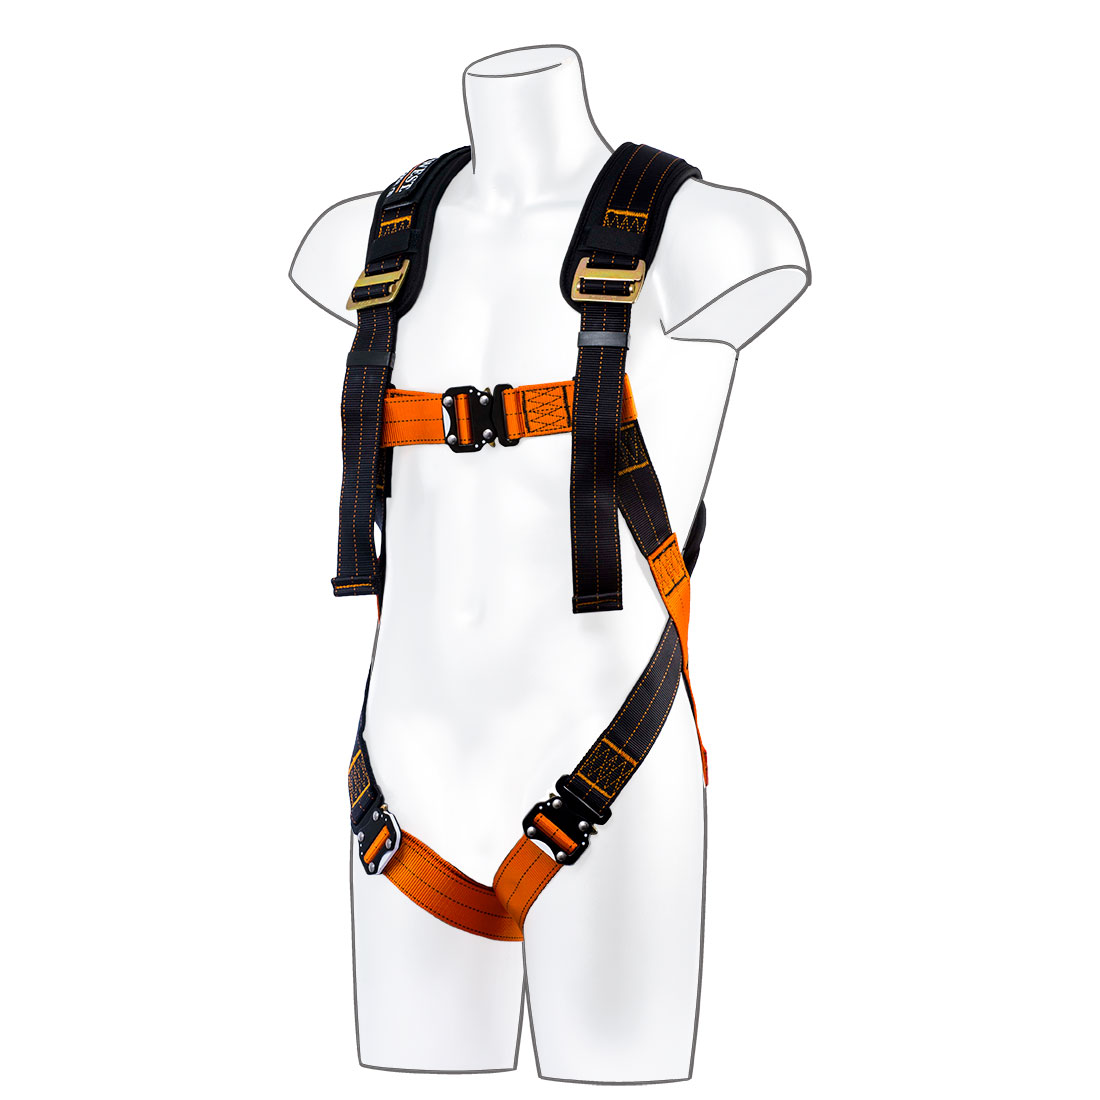 Portwest Fp71 Safety Harness